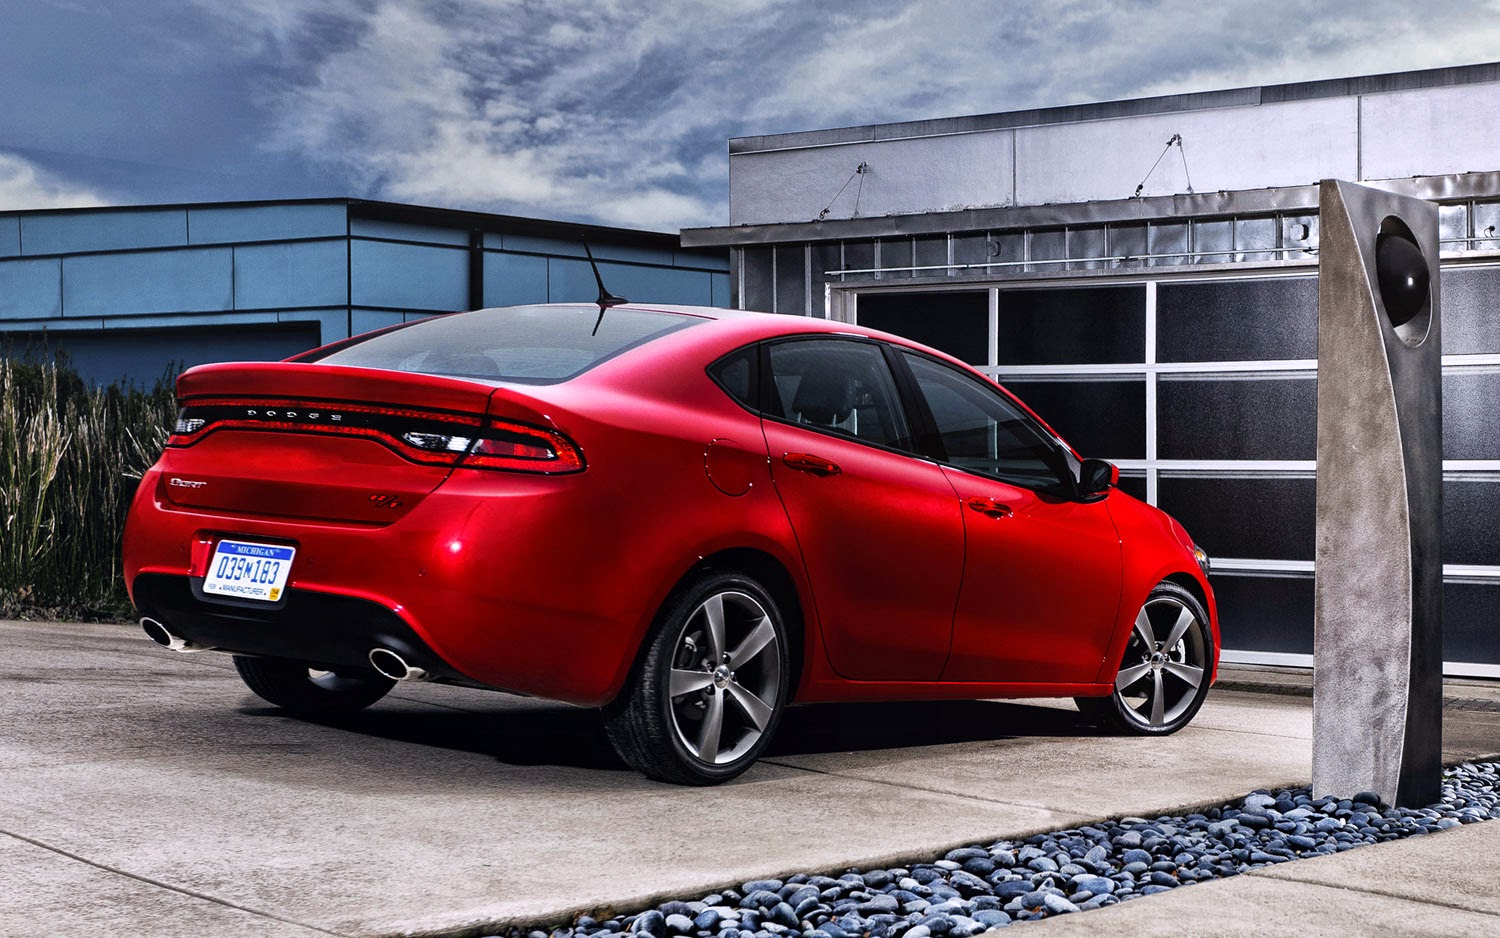 2015 Dodge Dart Car Review And Modification